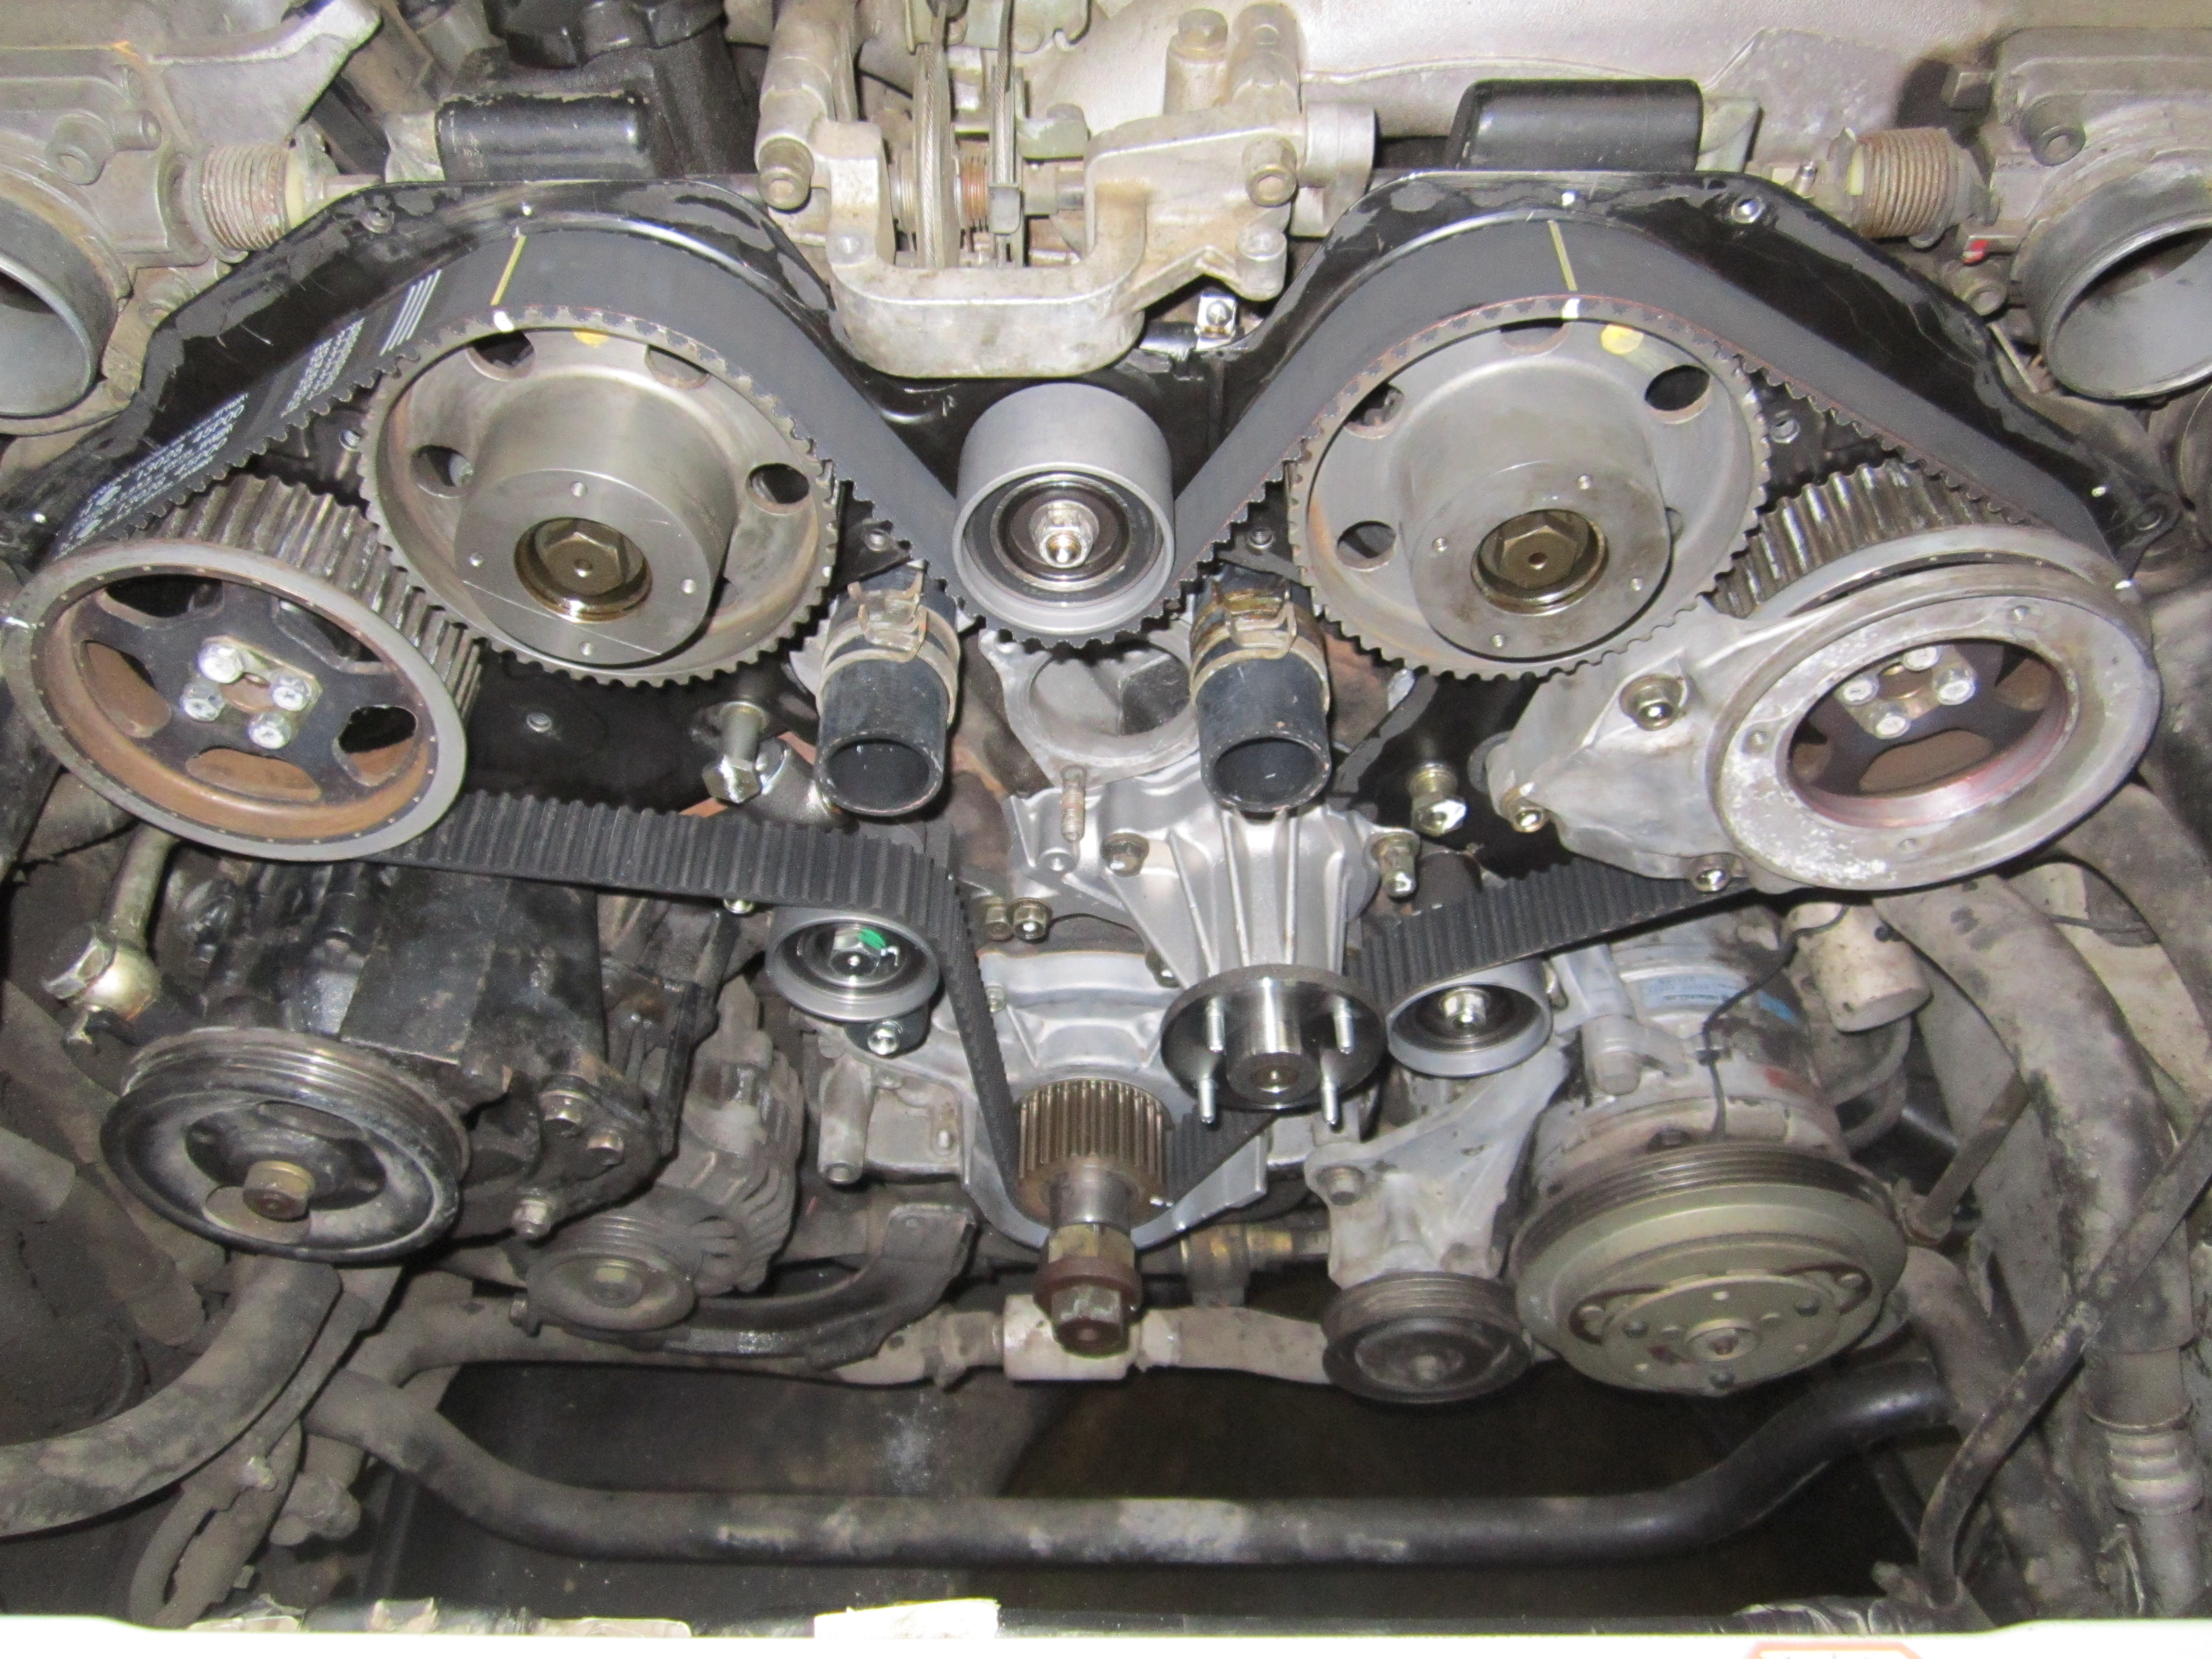 The 1990 1994 Z32TTs Have Fuel Injectors Problems Because Nissan Used A Wet Coil Design This Left Injector Wire Prone To Oxidation Over Time And